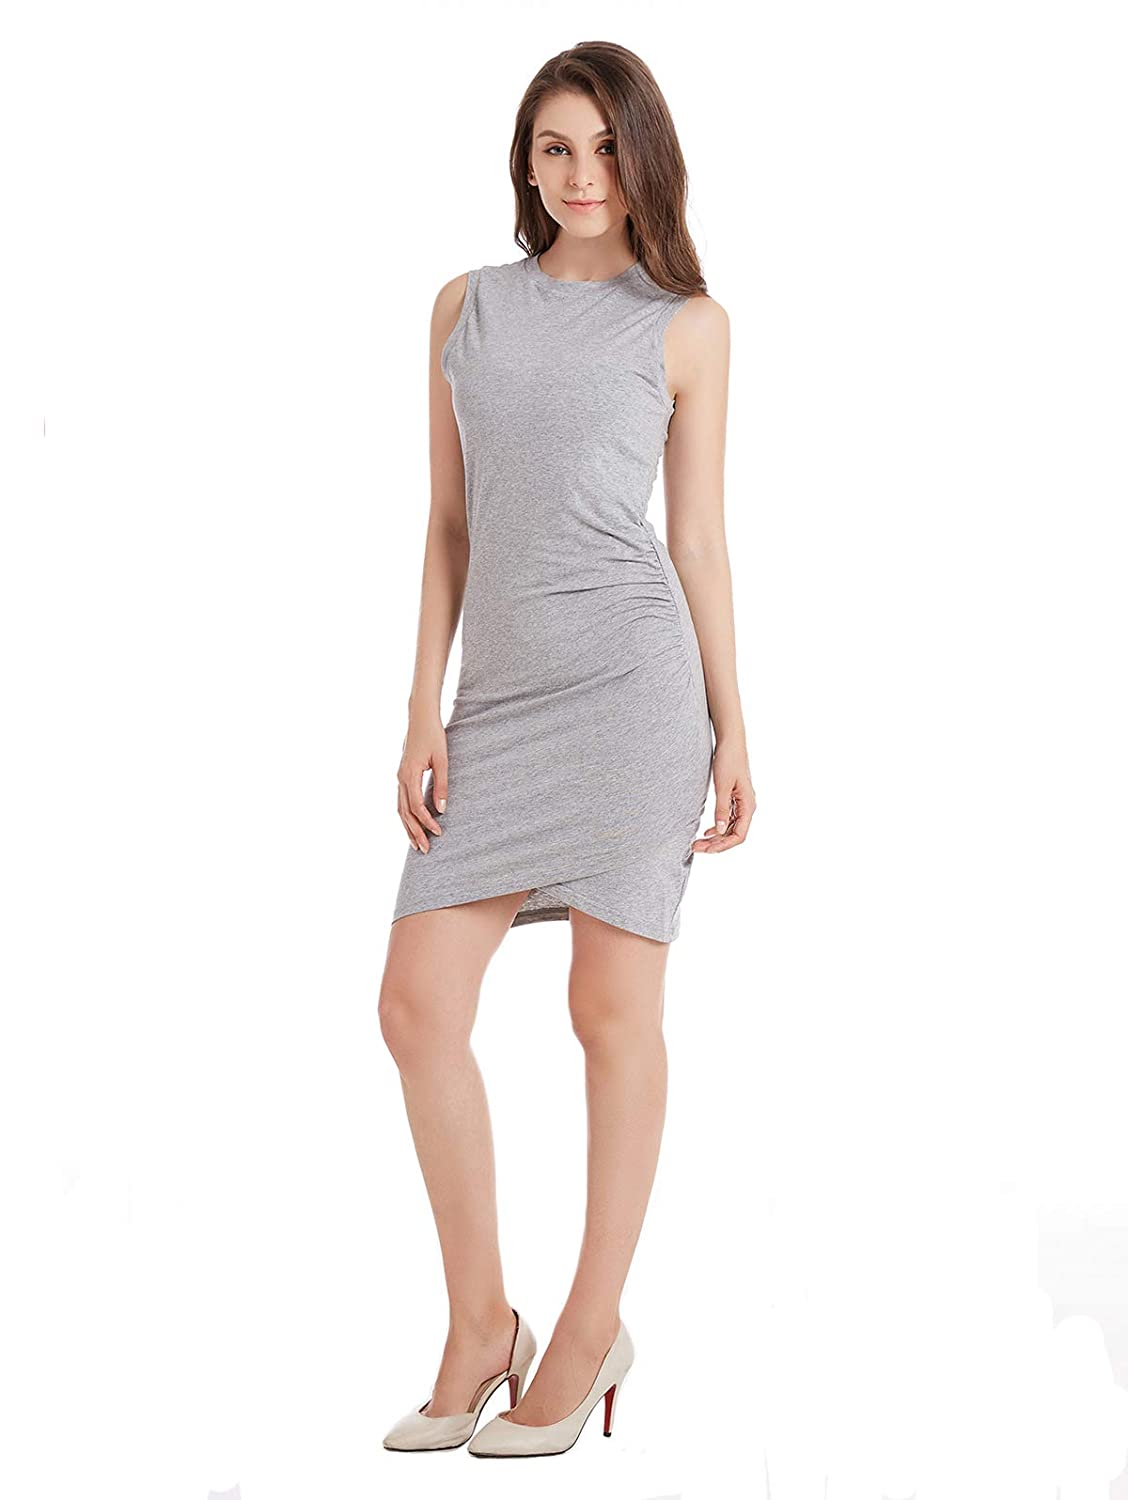 8139f2730b1d ... spandex.lightweight,soft and comfortable premium cotton,the kind that  stretches.unlined.material is thicker,not see through. This jersey dress  features ...